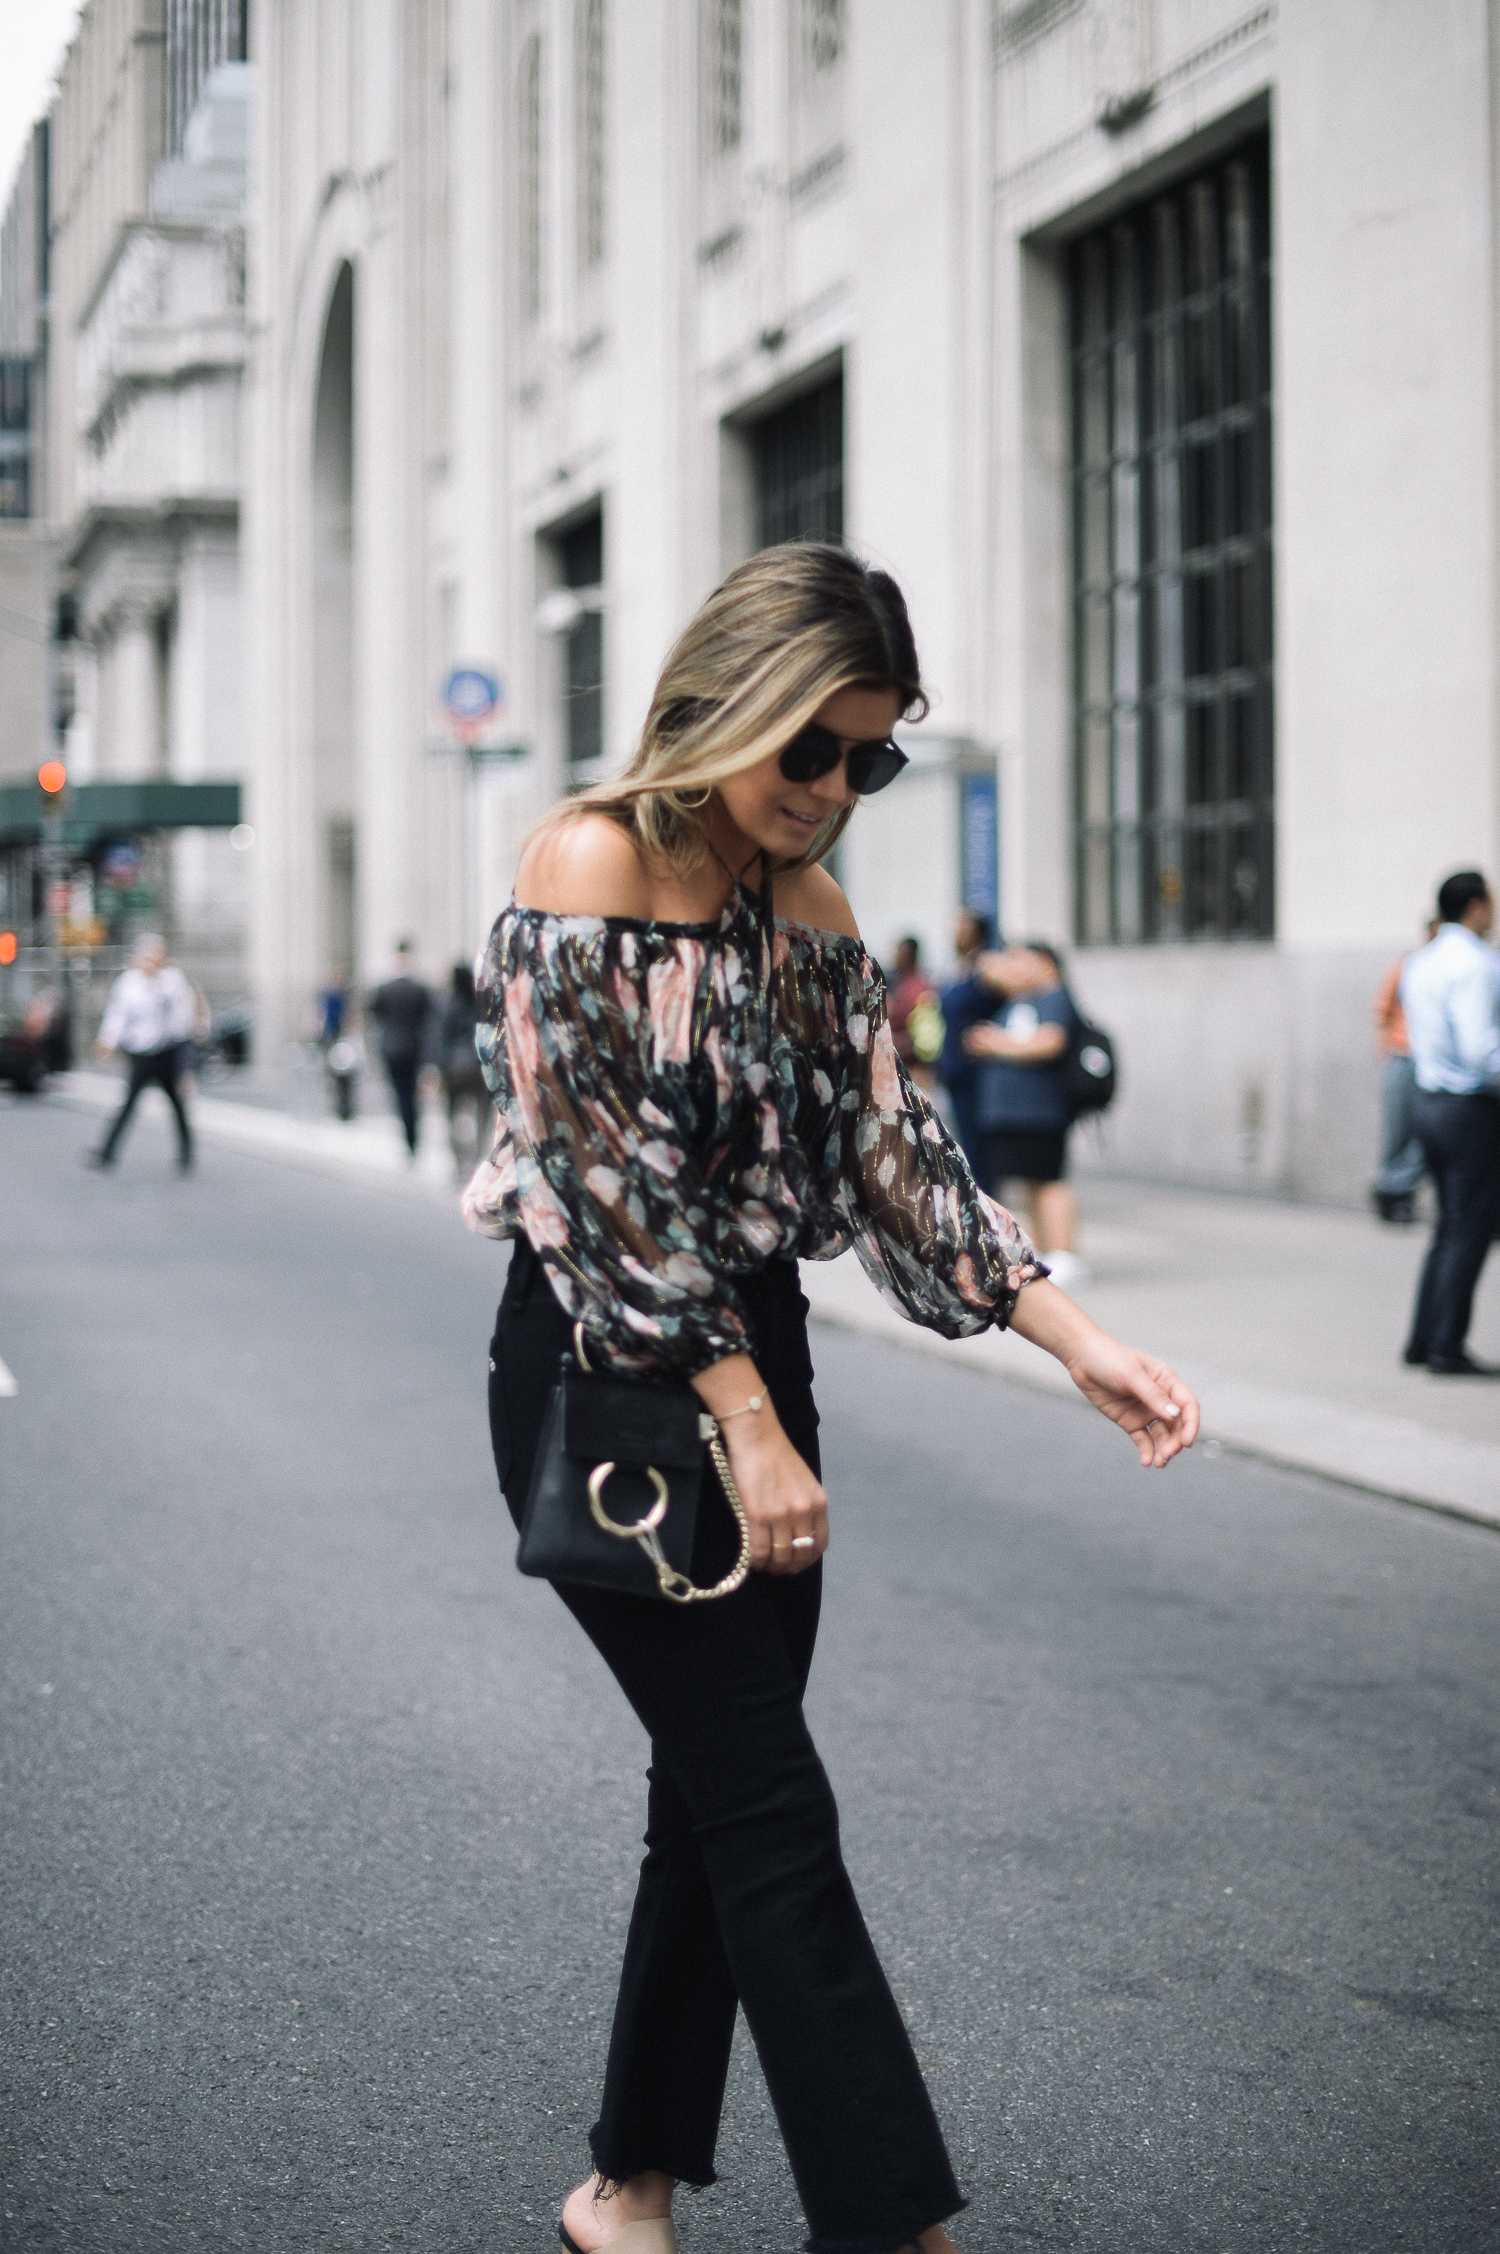 Style MBA Wears Zimmermann Top in NYC